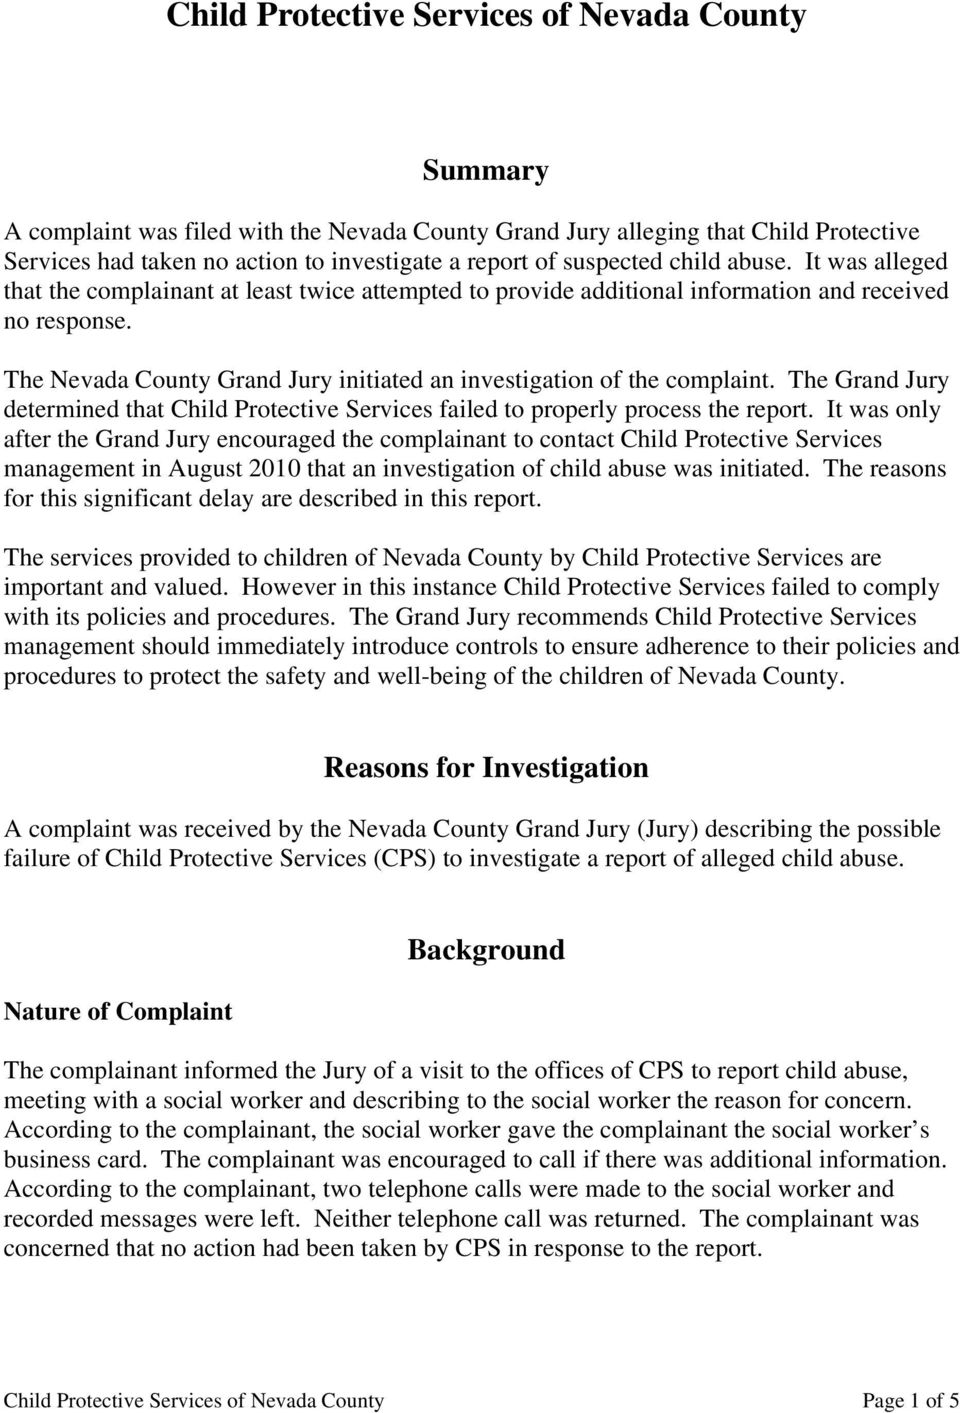 The Nevada County Grand Jury initiated an investigation of the complaint. The Grand Jury determined that Child Protective Services failed to properly process the report.